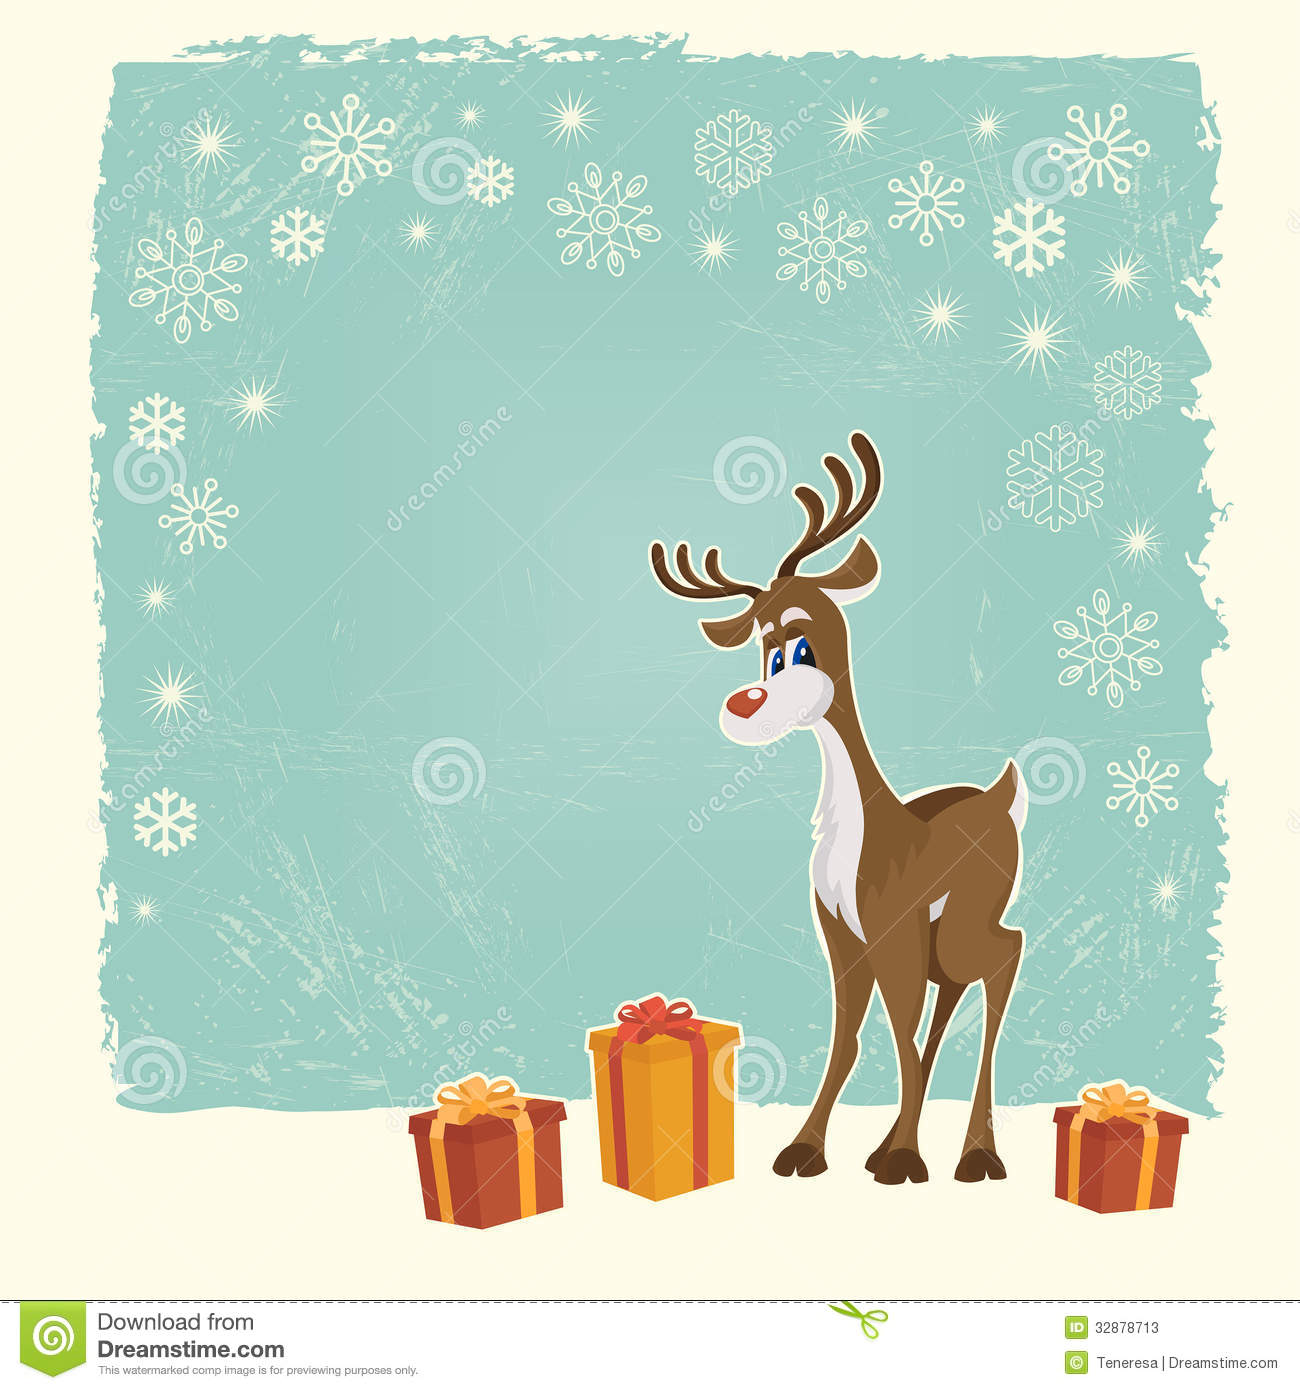 Retro Christmas Card With Reindeer Stock Vector - Image ...